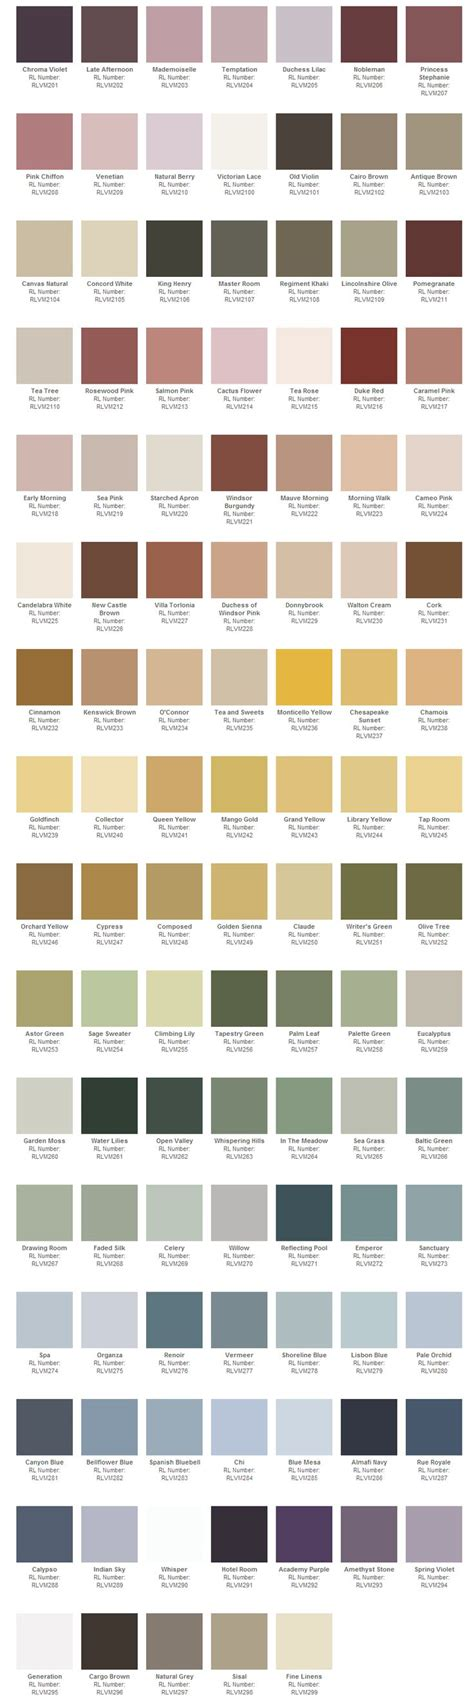 ralph lauren paint colors 1065 best images about interiors color combinations on